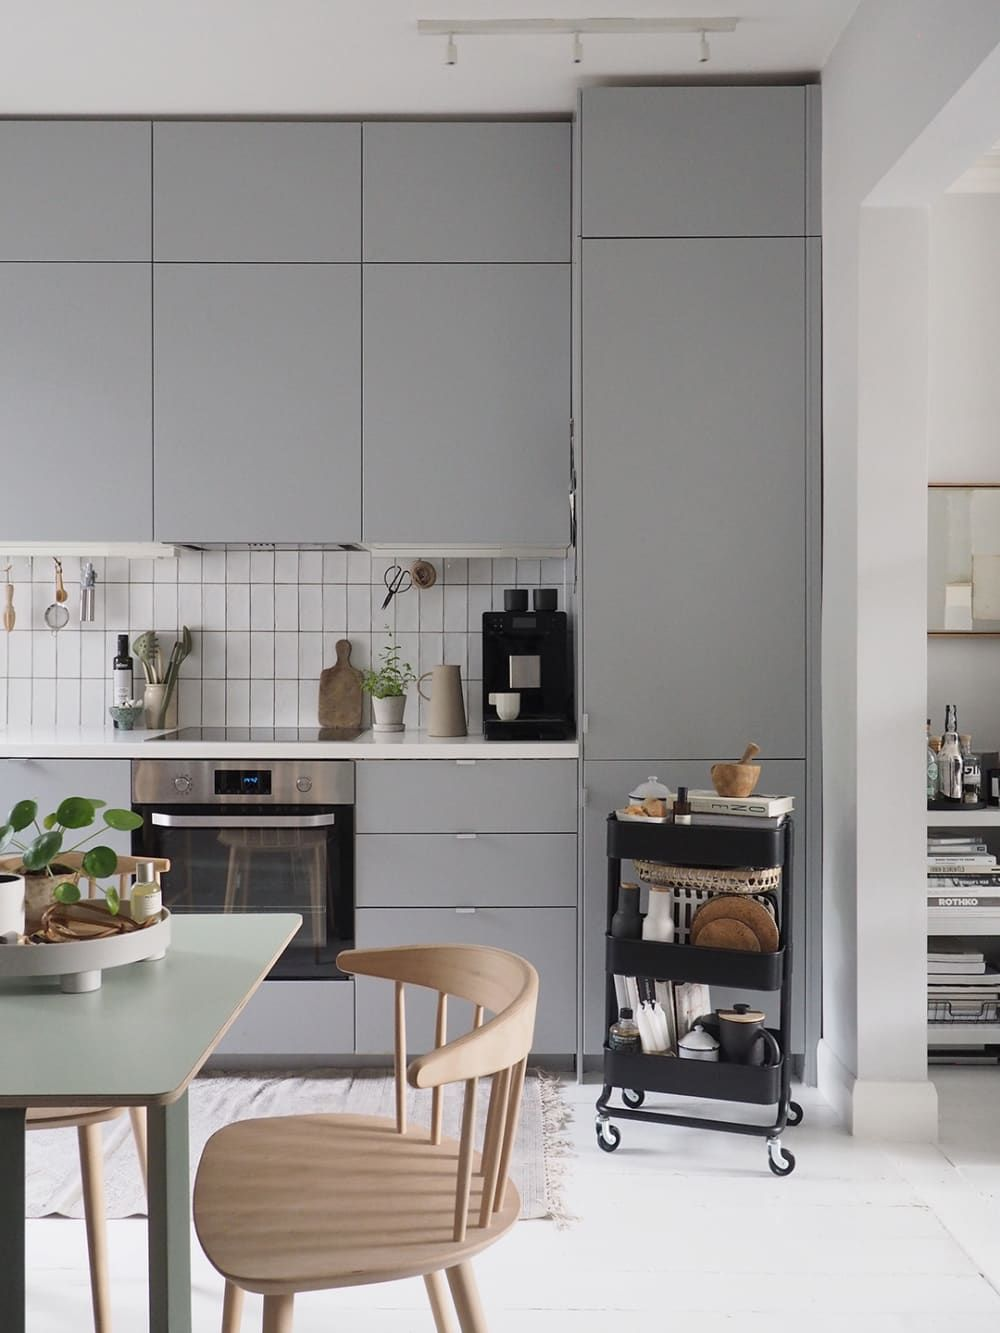 A Scandinavian Inspired London Home Is An Elegantly Simple And Inspiring Space Ikea Kitchen Design Kitchen Design Minimalist Kitchen Inspiration